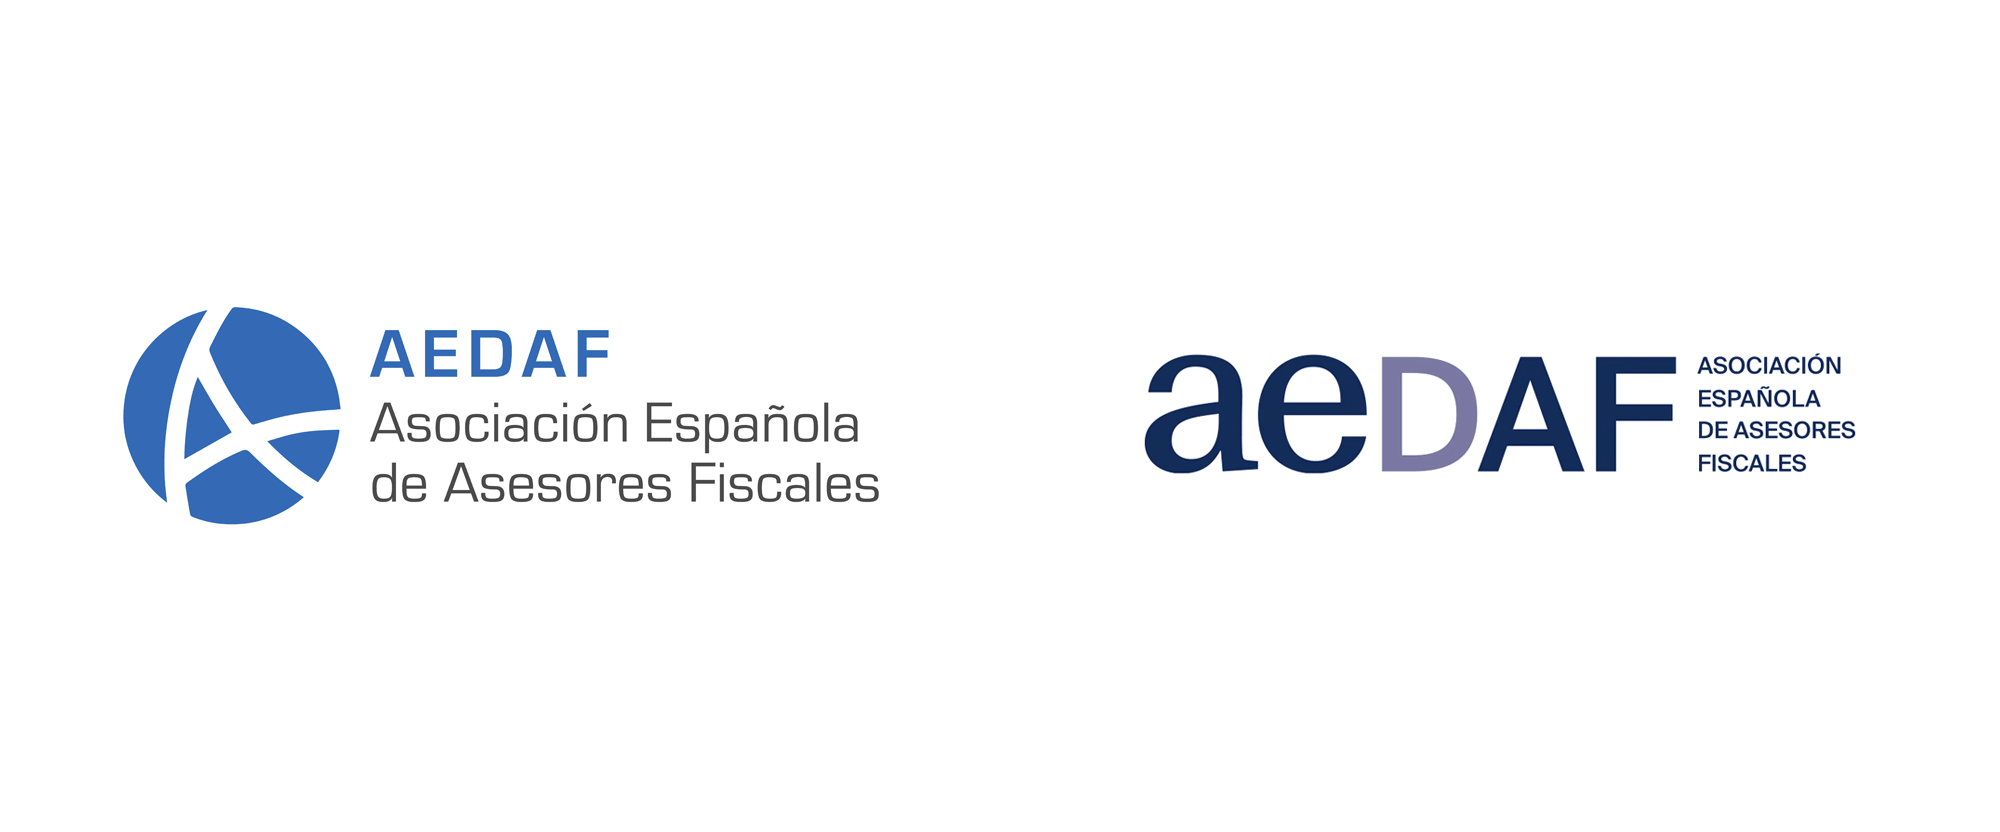 New Logo and Identity for AEDAF by Nueve